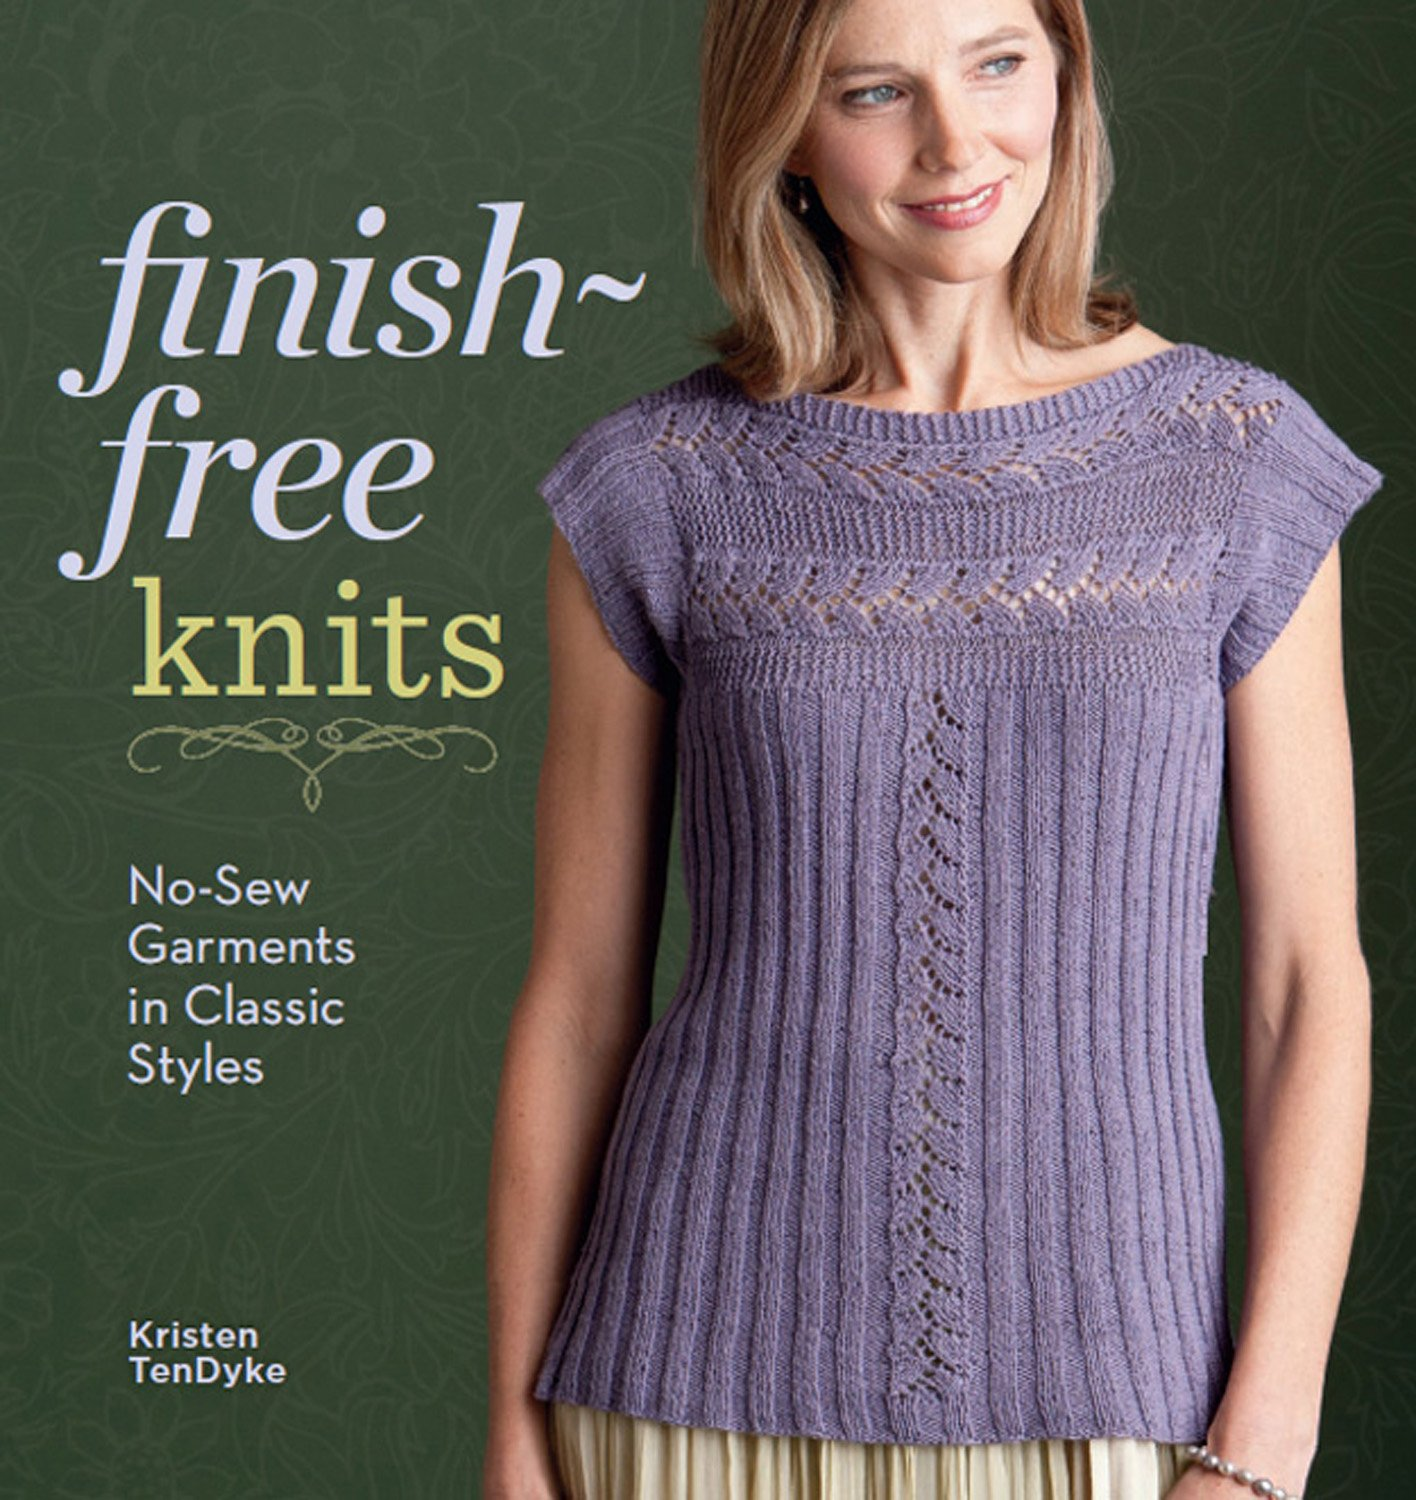 finish-free-knits-no-sew-garments-in-classic-styles